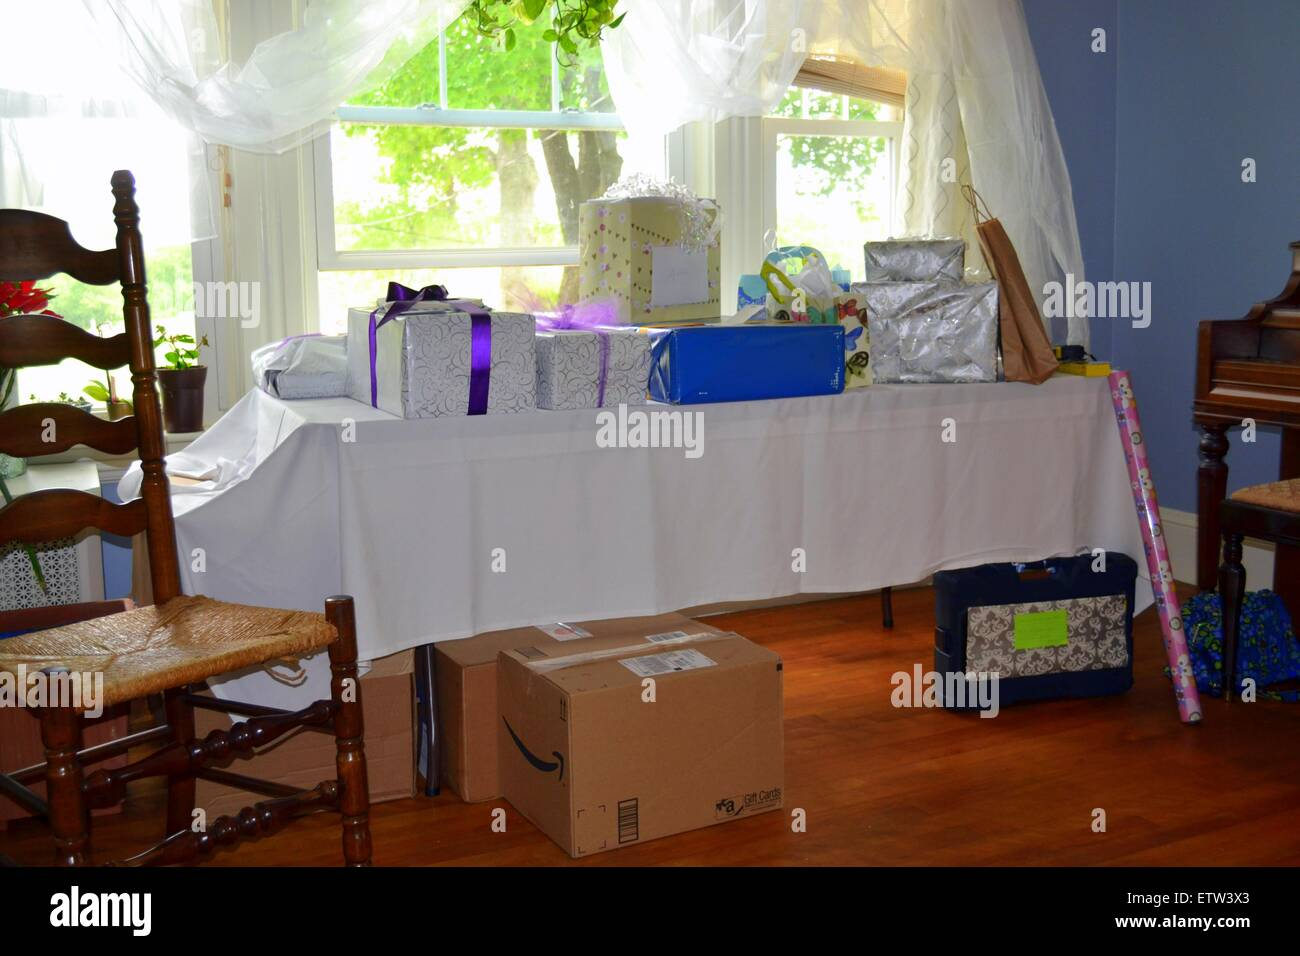 the gift table from a Bridal engagement wedding shower - Stock Image